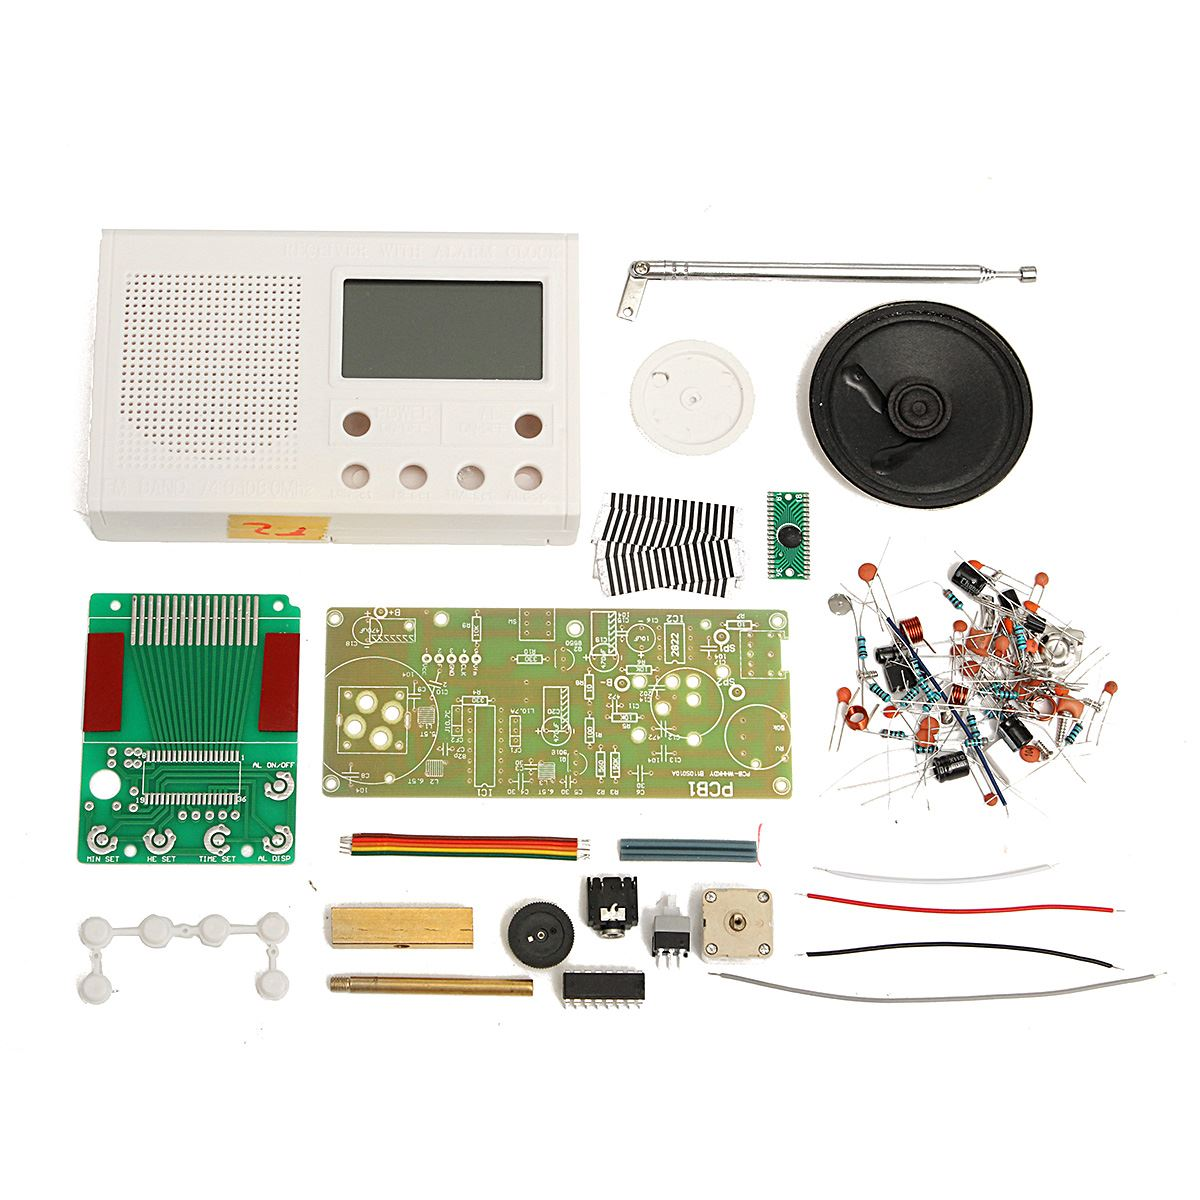 Best DIY FM Radio Electronic Hobbies Learning Suite Kit White Frequency Range 72-108.6MHz(China (Mainland))